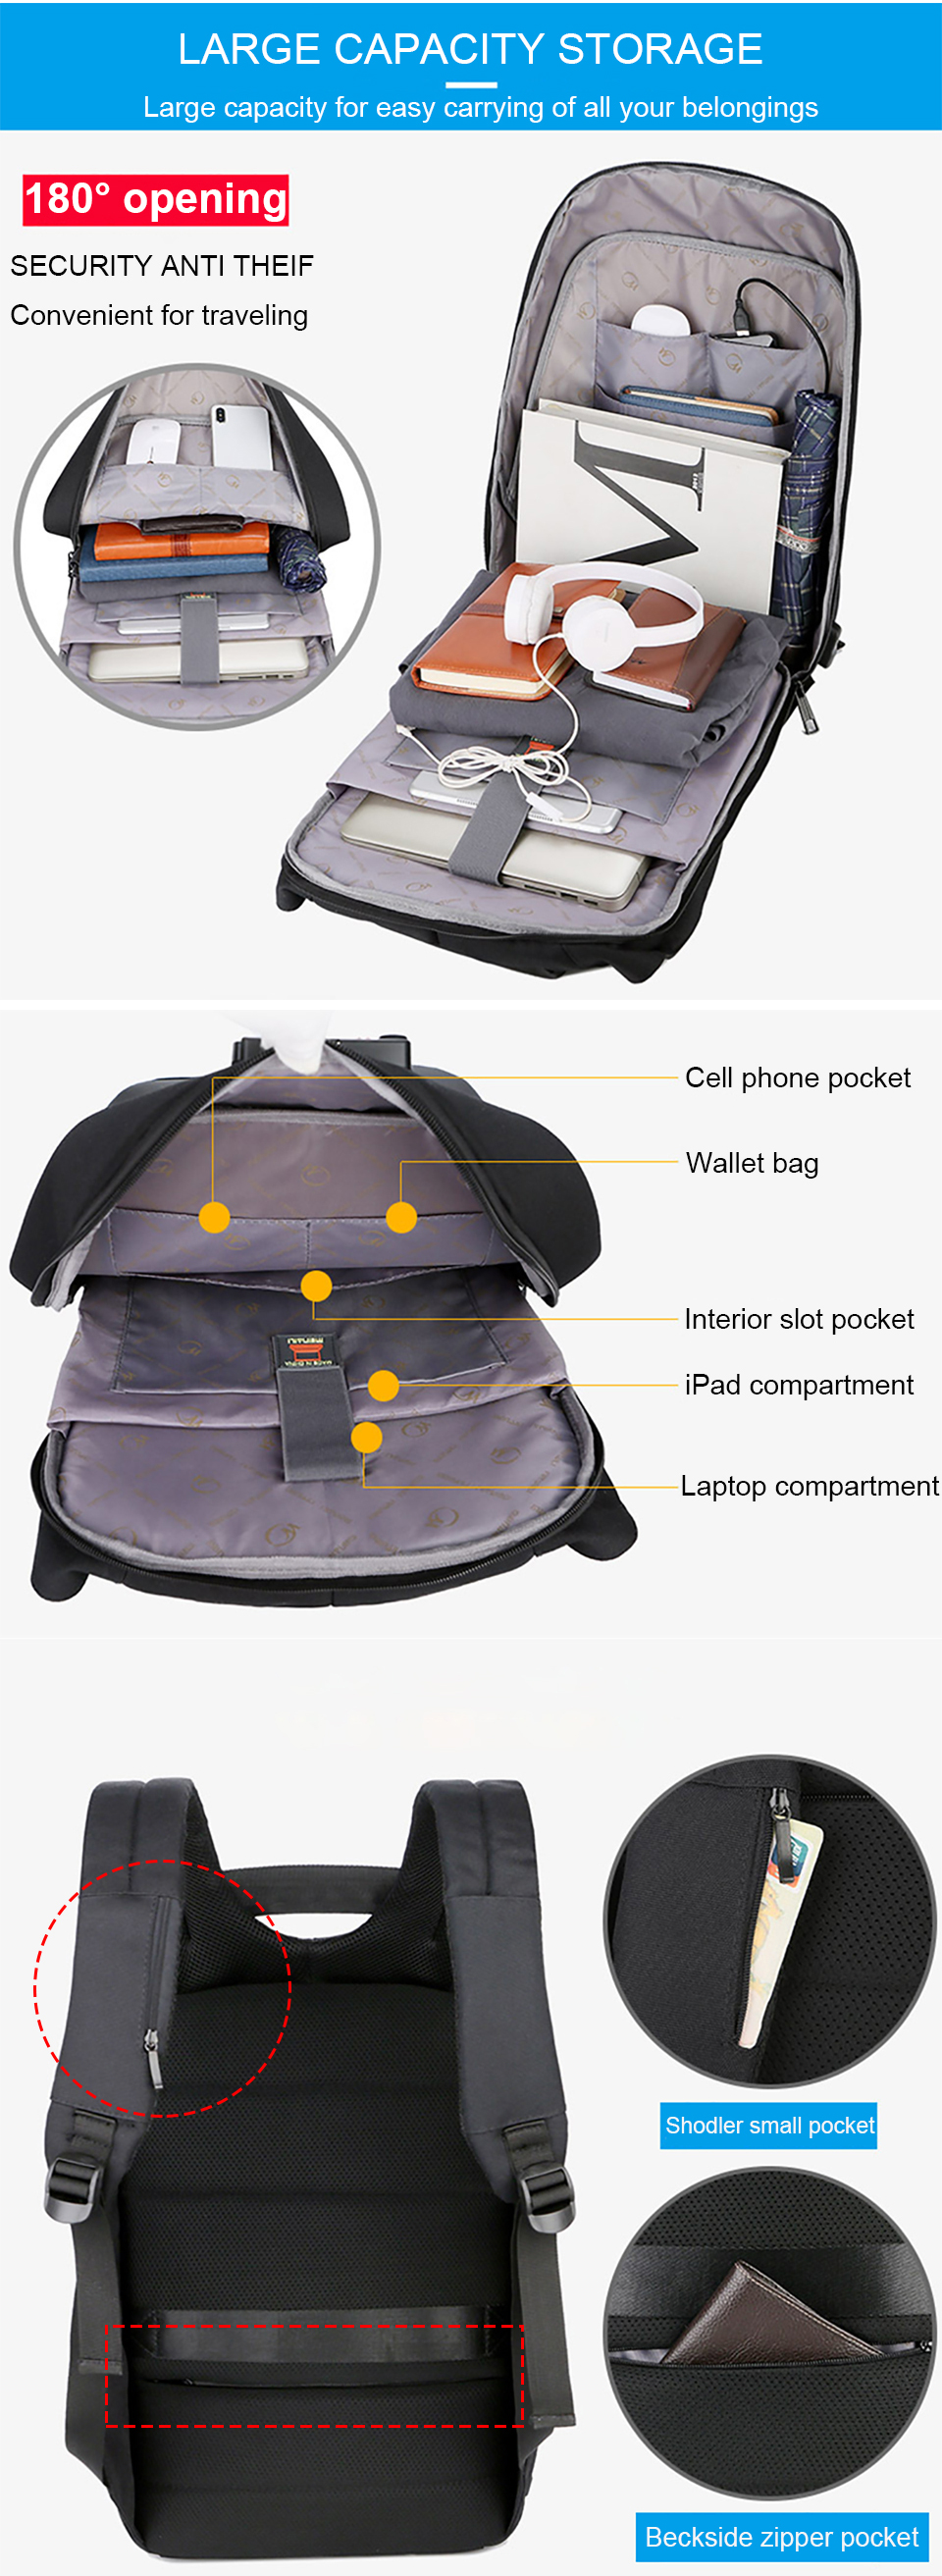 2 Anti Theft Backpacks Man Bag Large Capacity 15.6 Inch Laptop Notebook Backpack Business USB Back Pack Travel luggage Backpacking